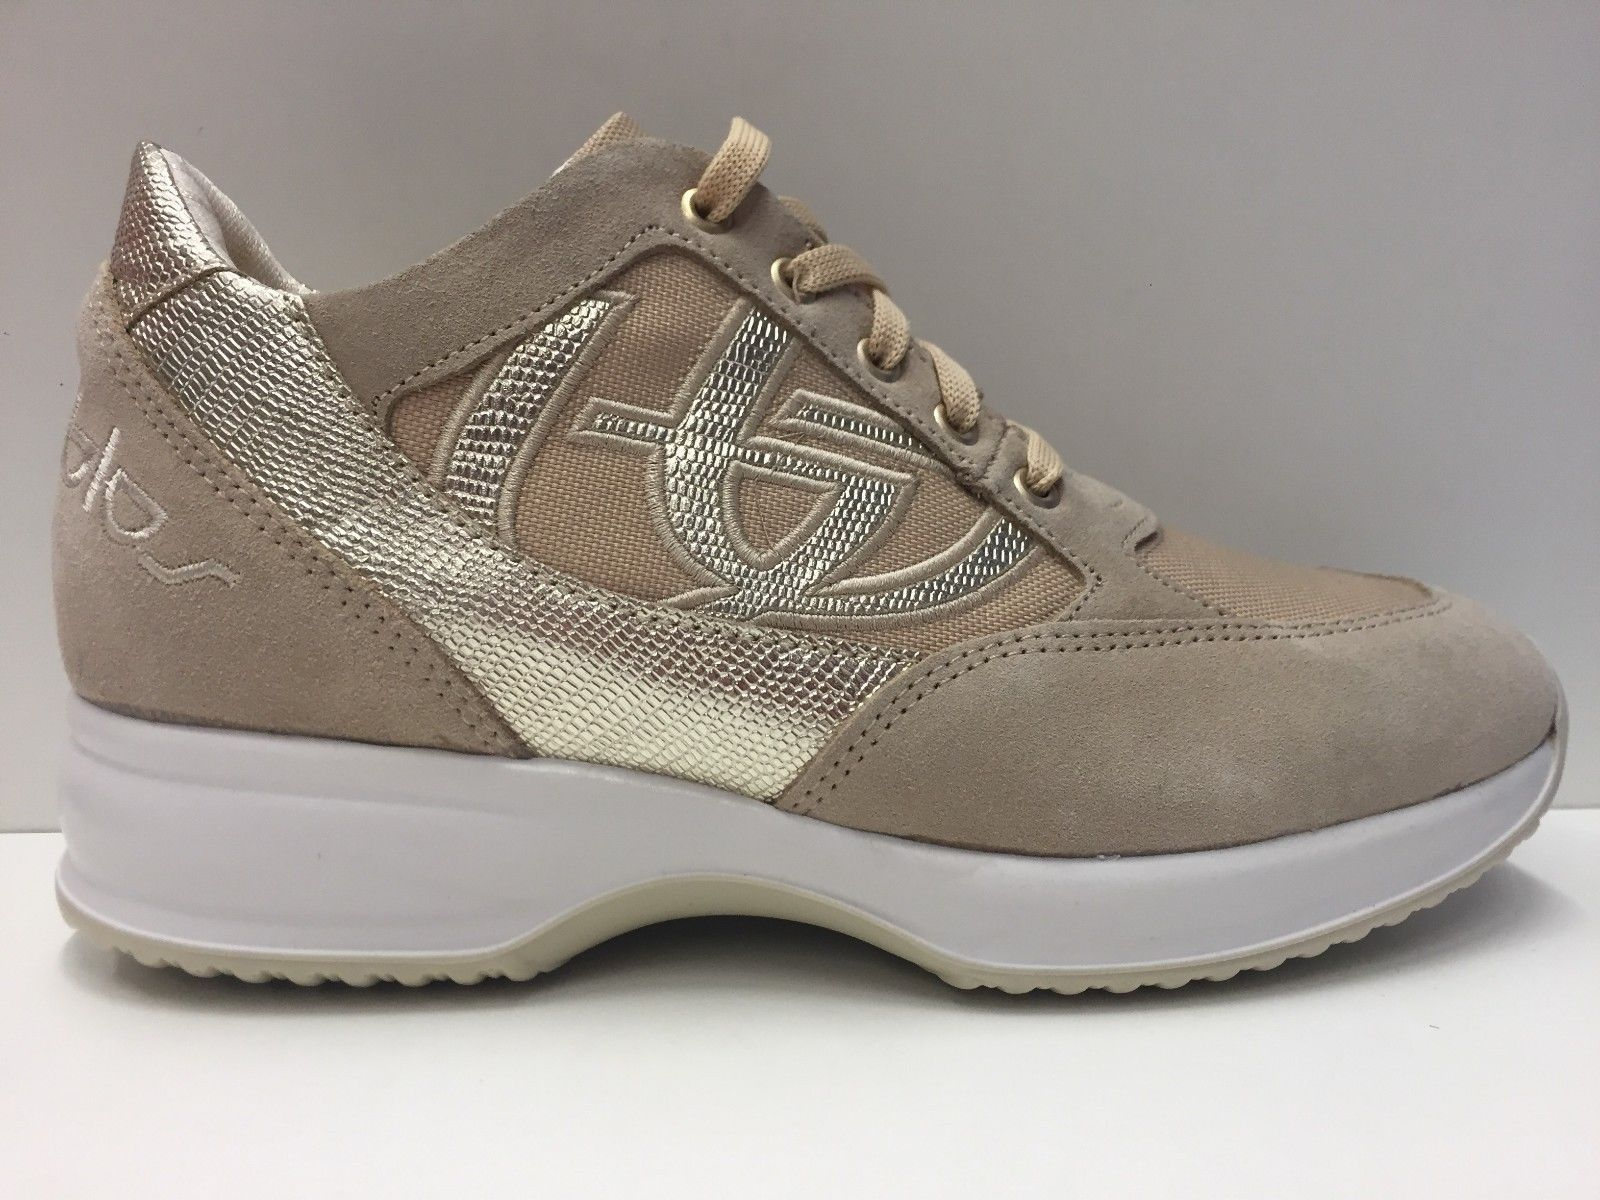 reputable site 5f735 111be SCARPE CASUAL SNEAKERS DONNA BYBLOS ORIGINALE BYACTIVE 652002007 PELLE P/E  NUOVO